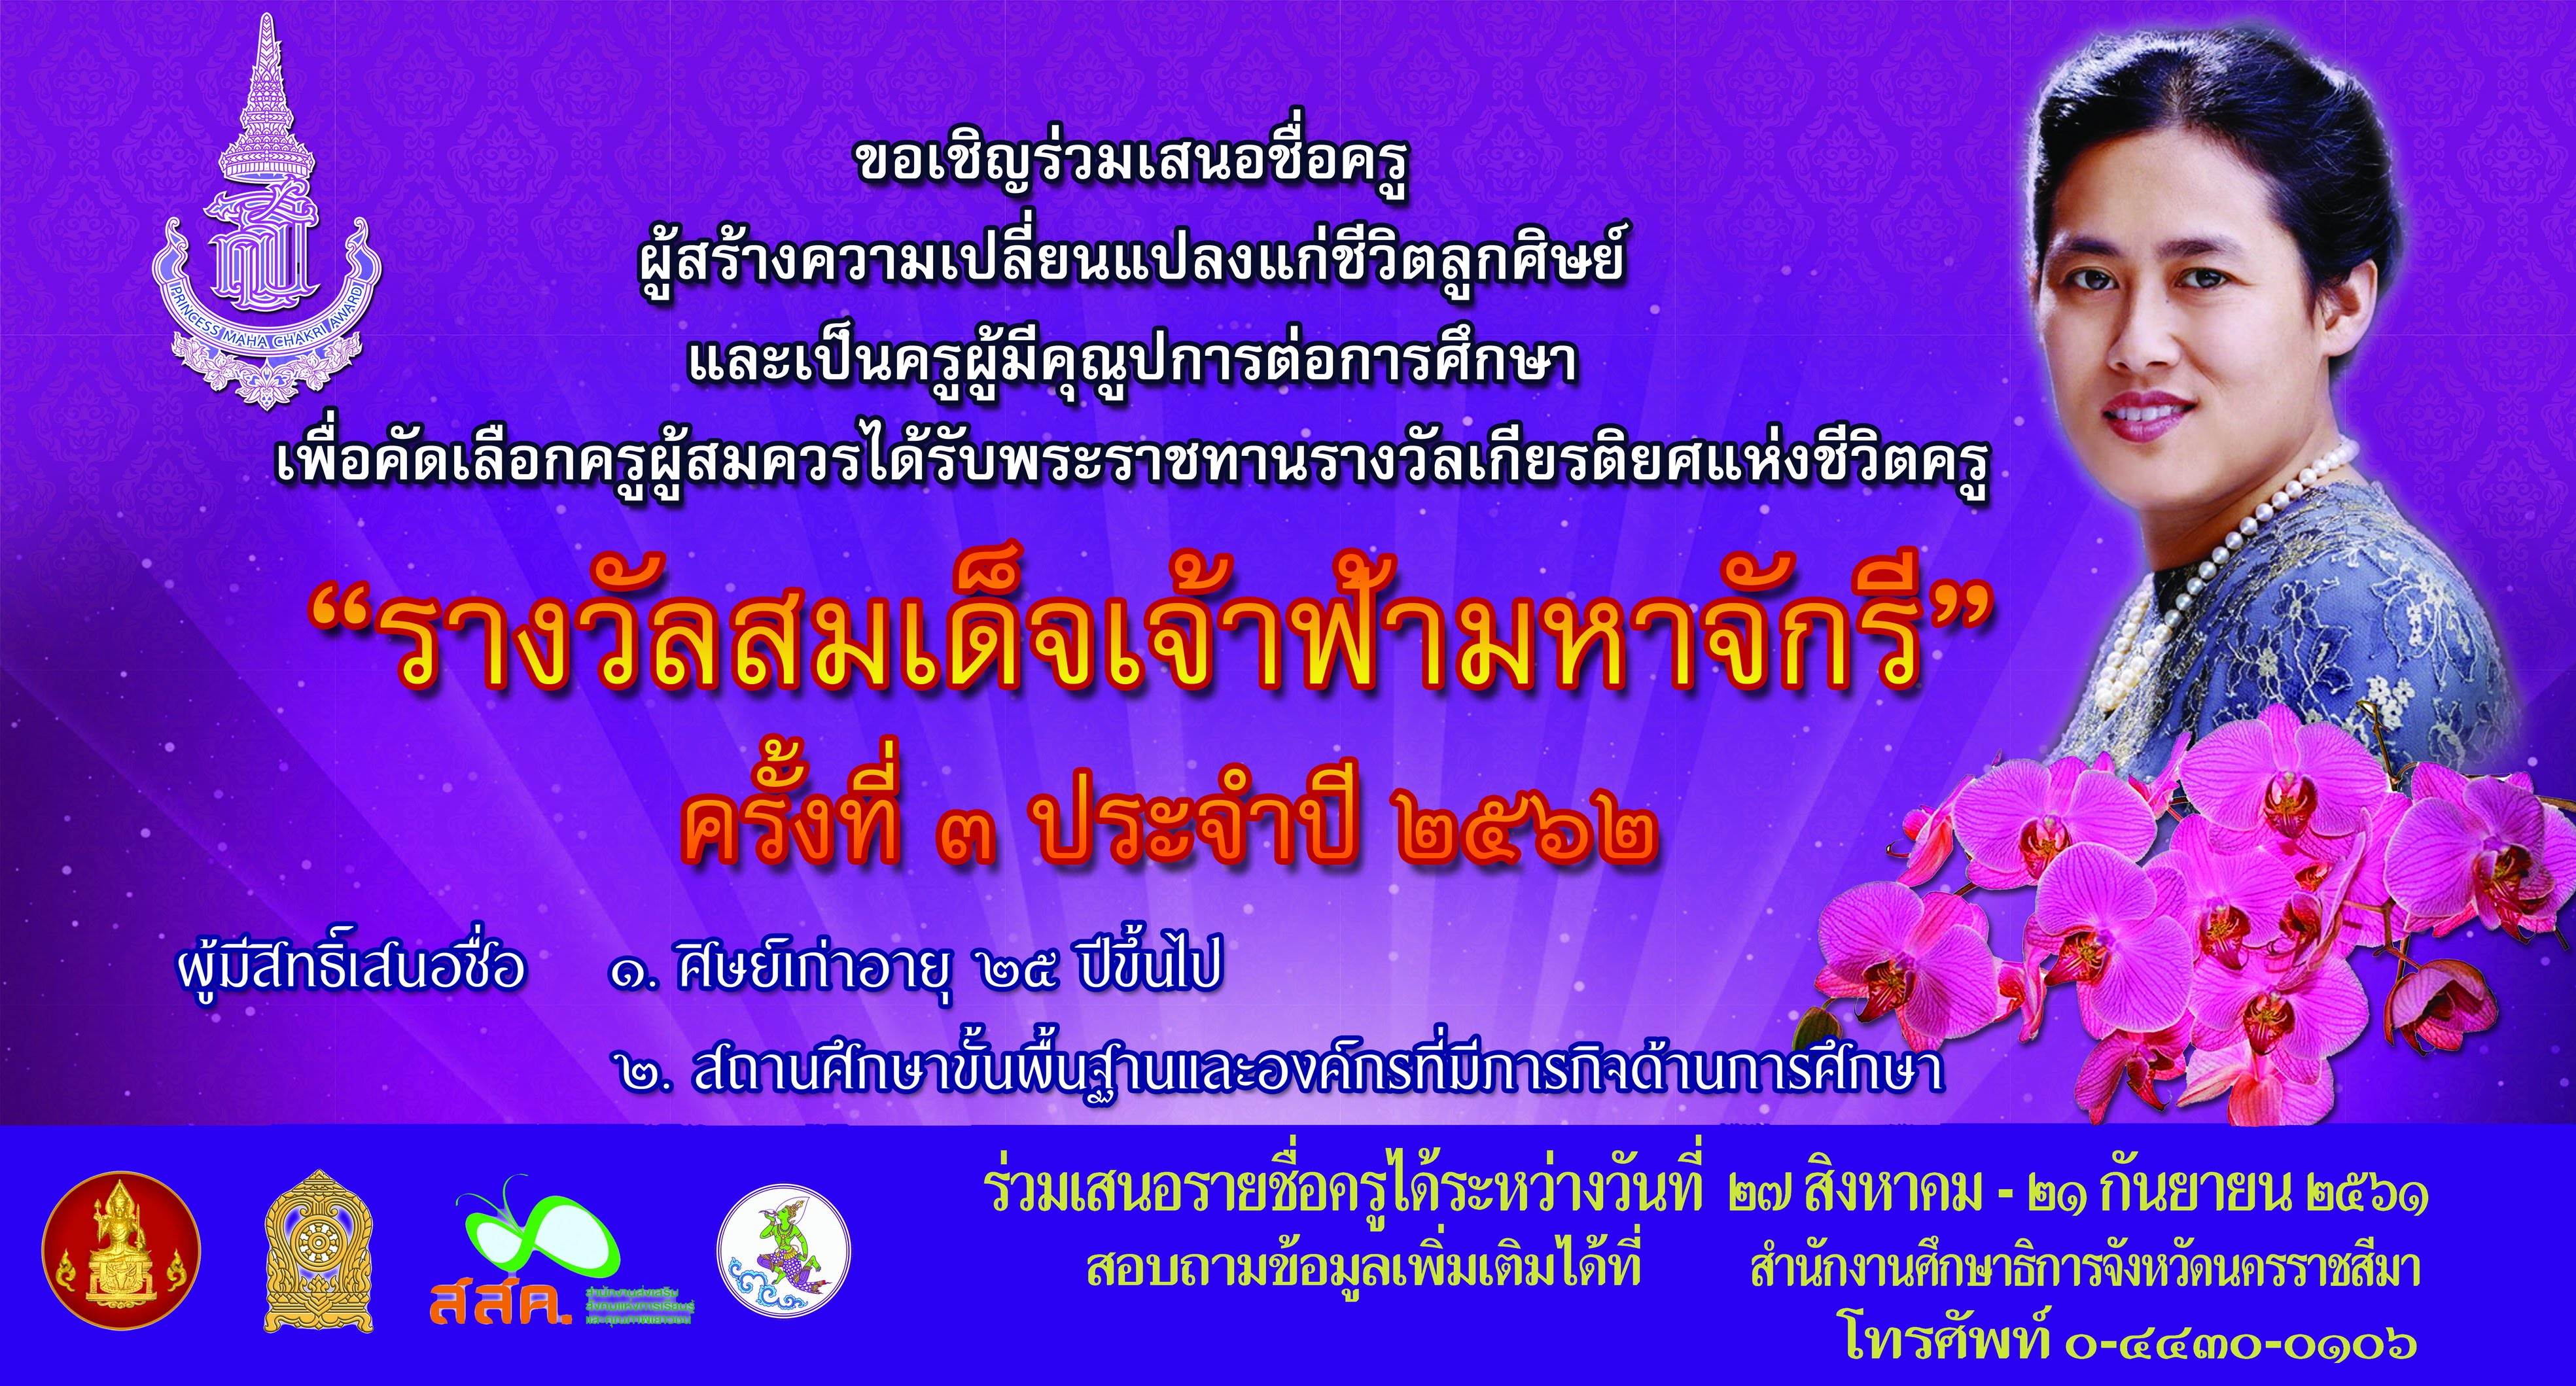 http://www.pmca.or.th/thai/?p=5191